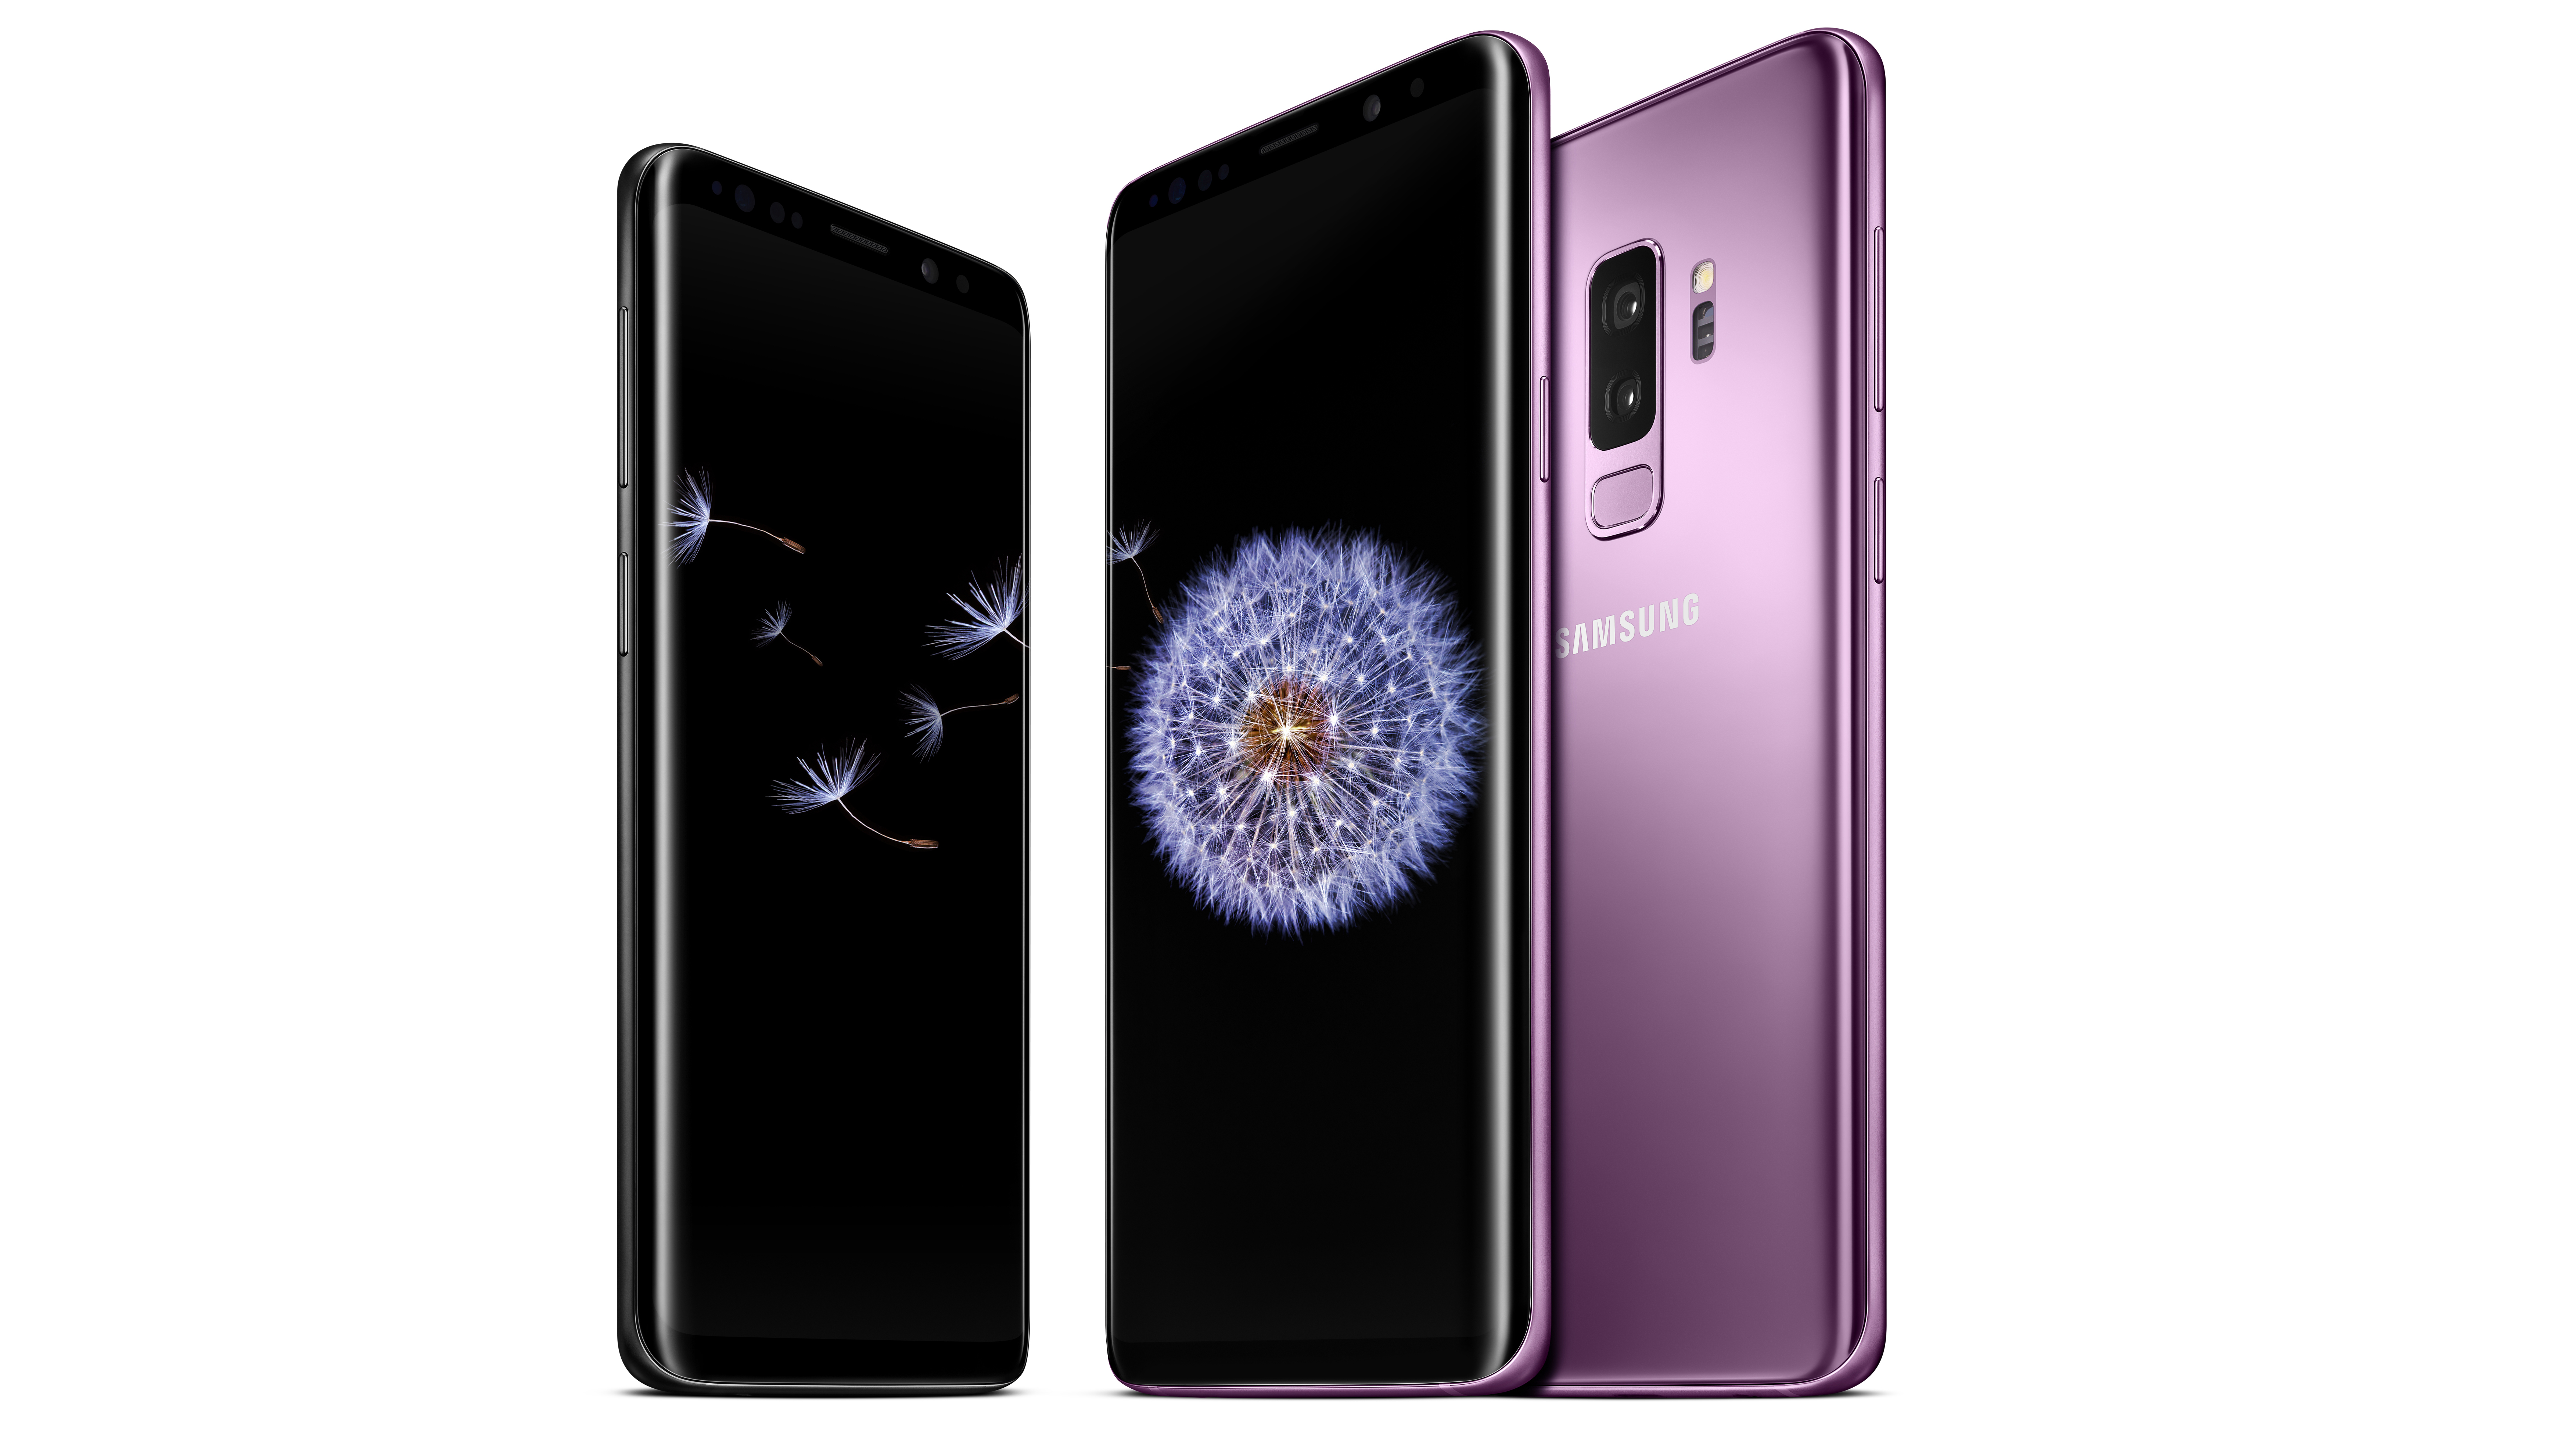 4jLxNE2J2VysUPhpw7UafZ - Samsung Galaxy S9 and S9 Plus break download speed records on Telstra's network